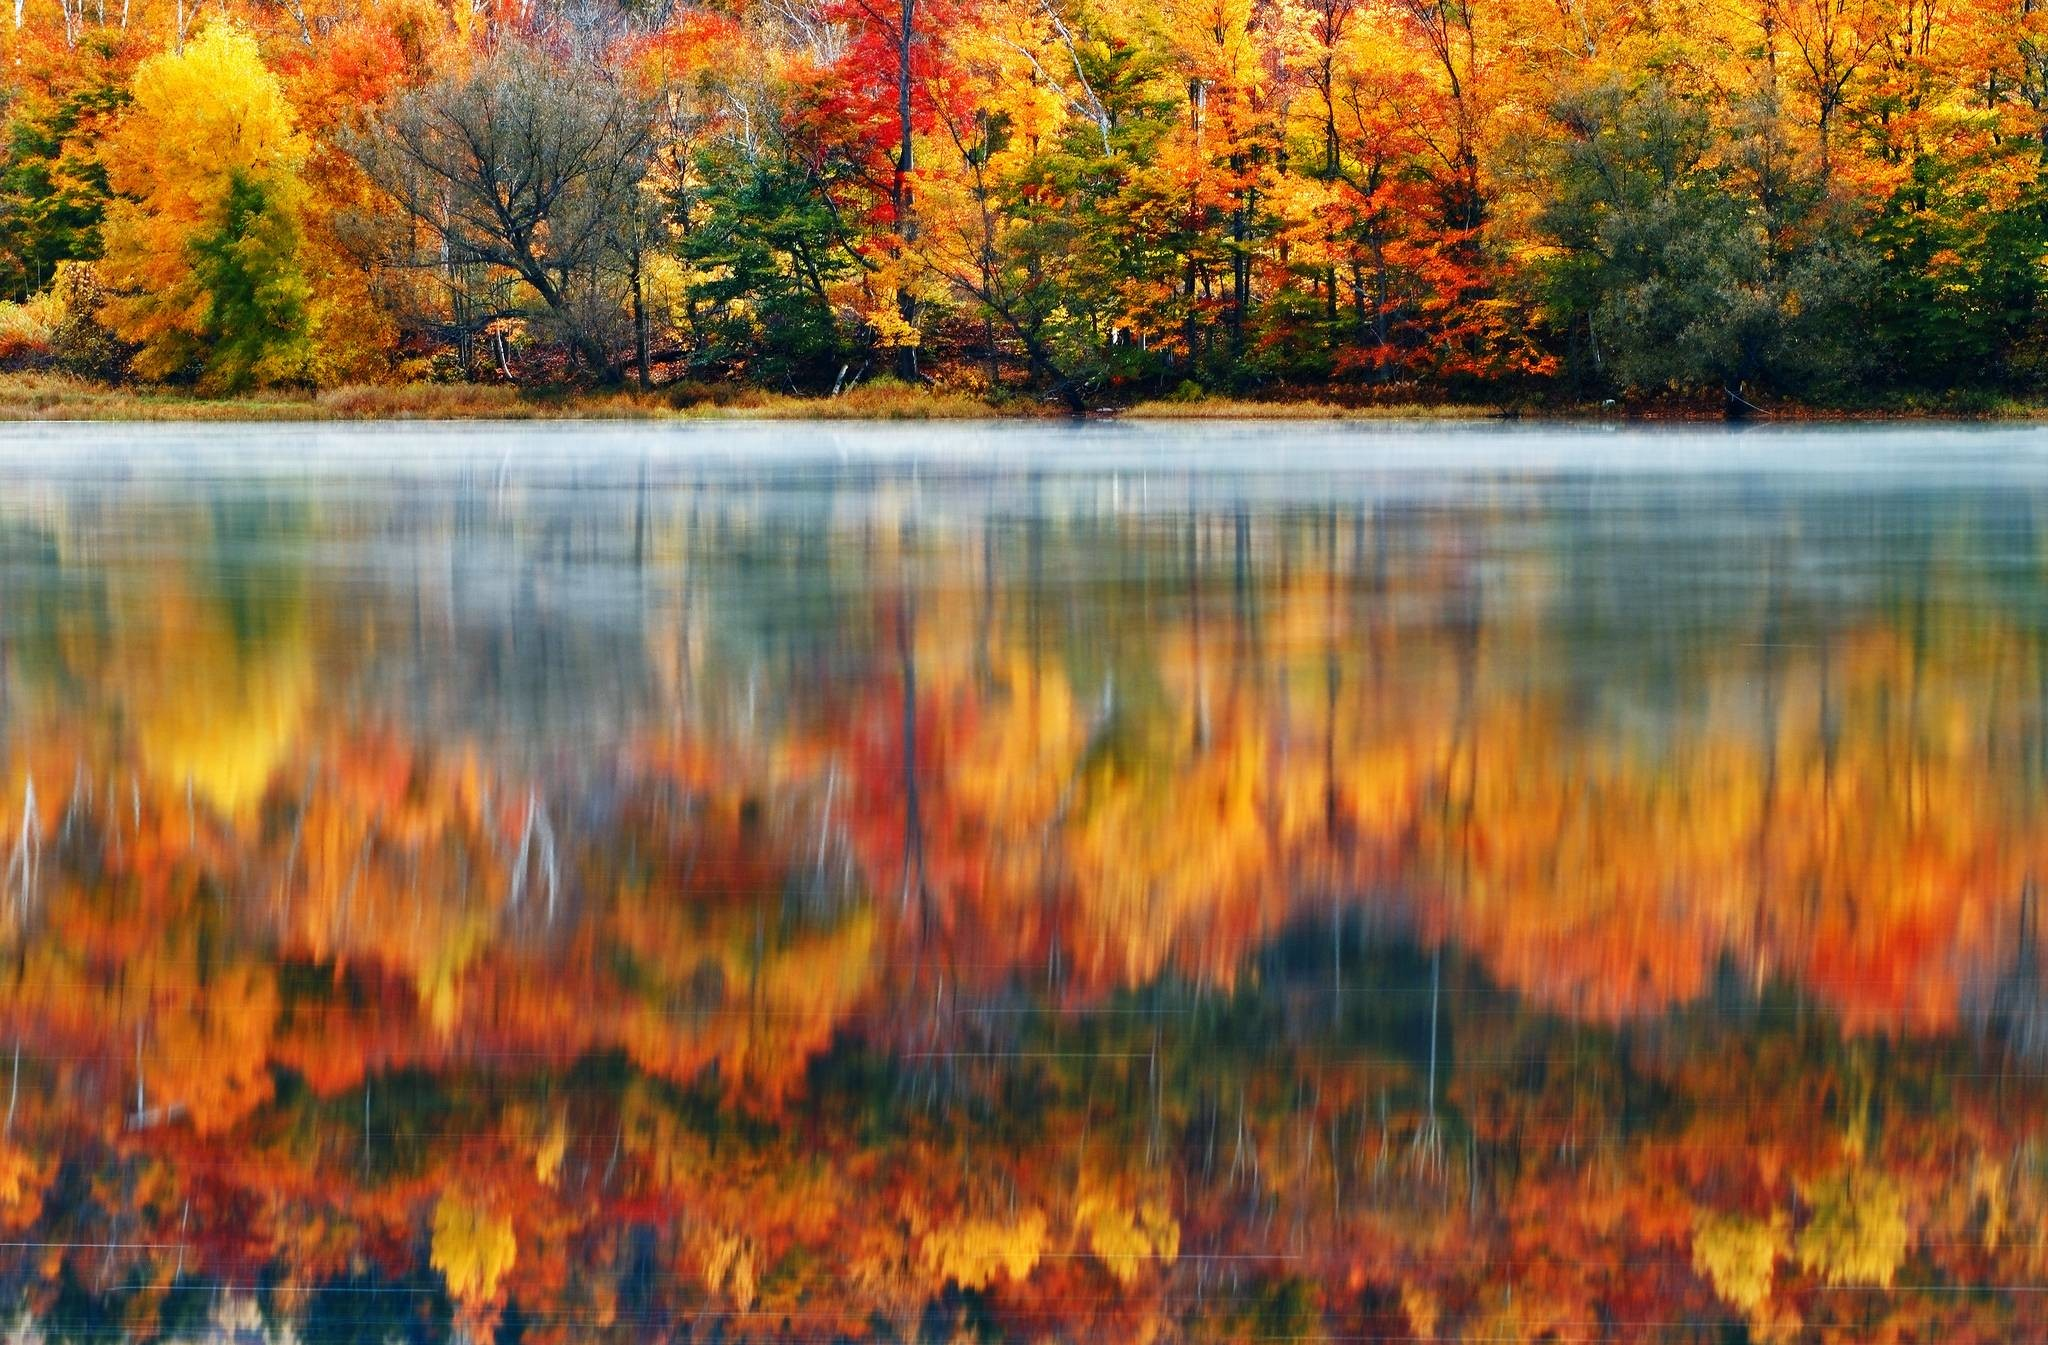 New England Fall Wallpaper 36 images 2048x1345